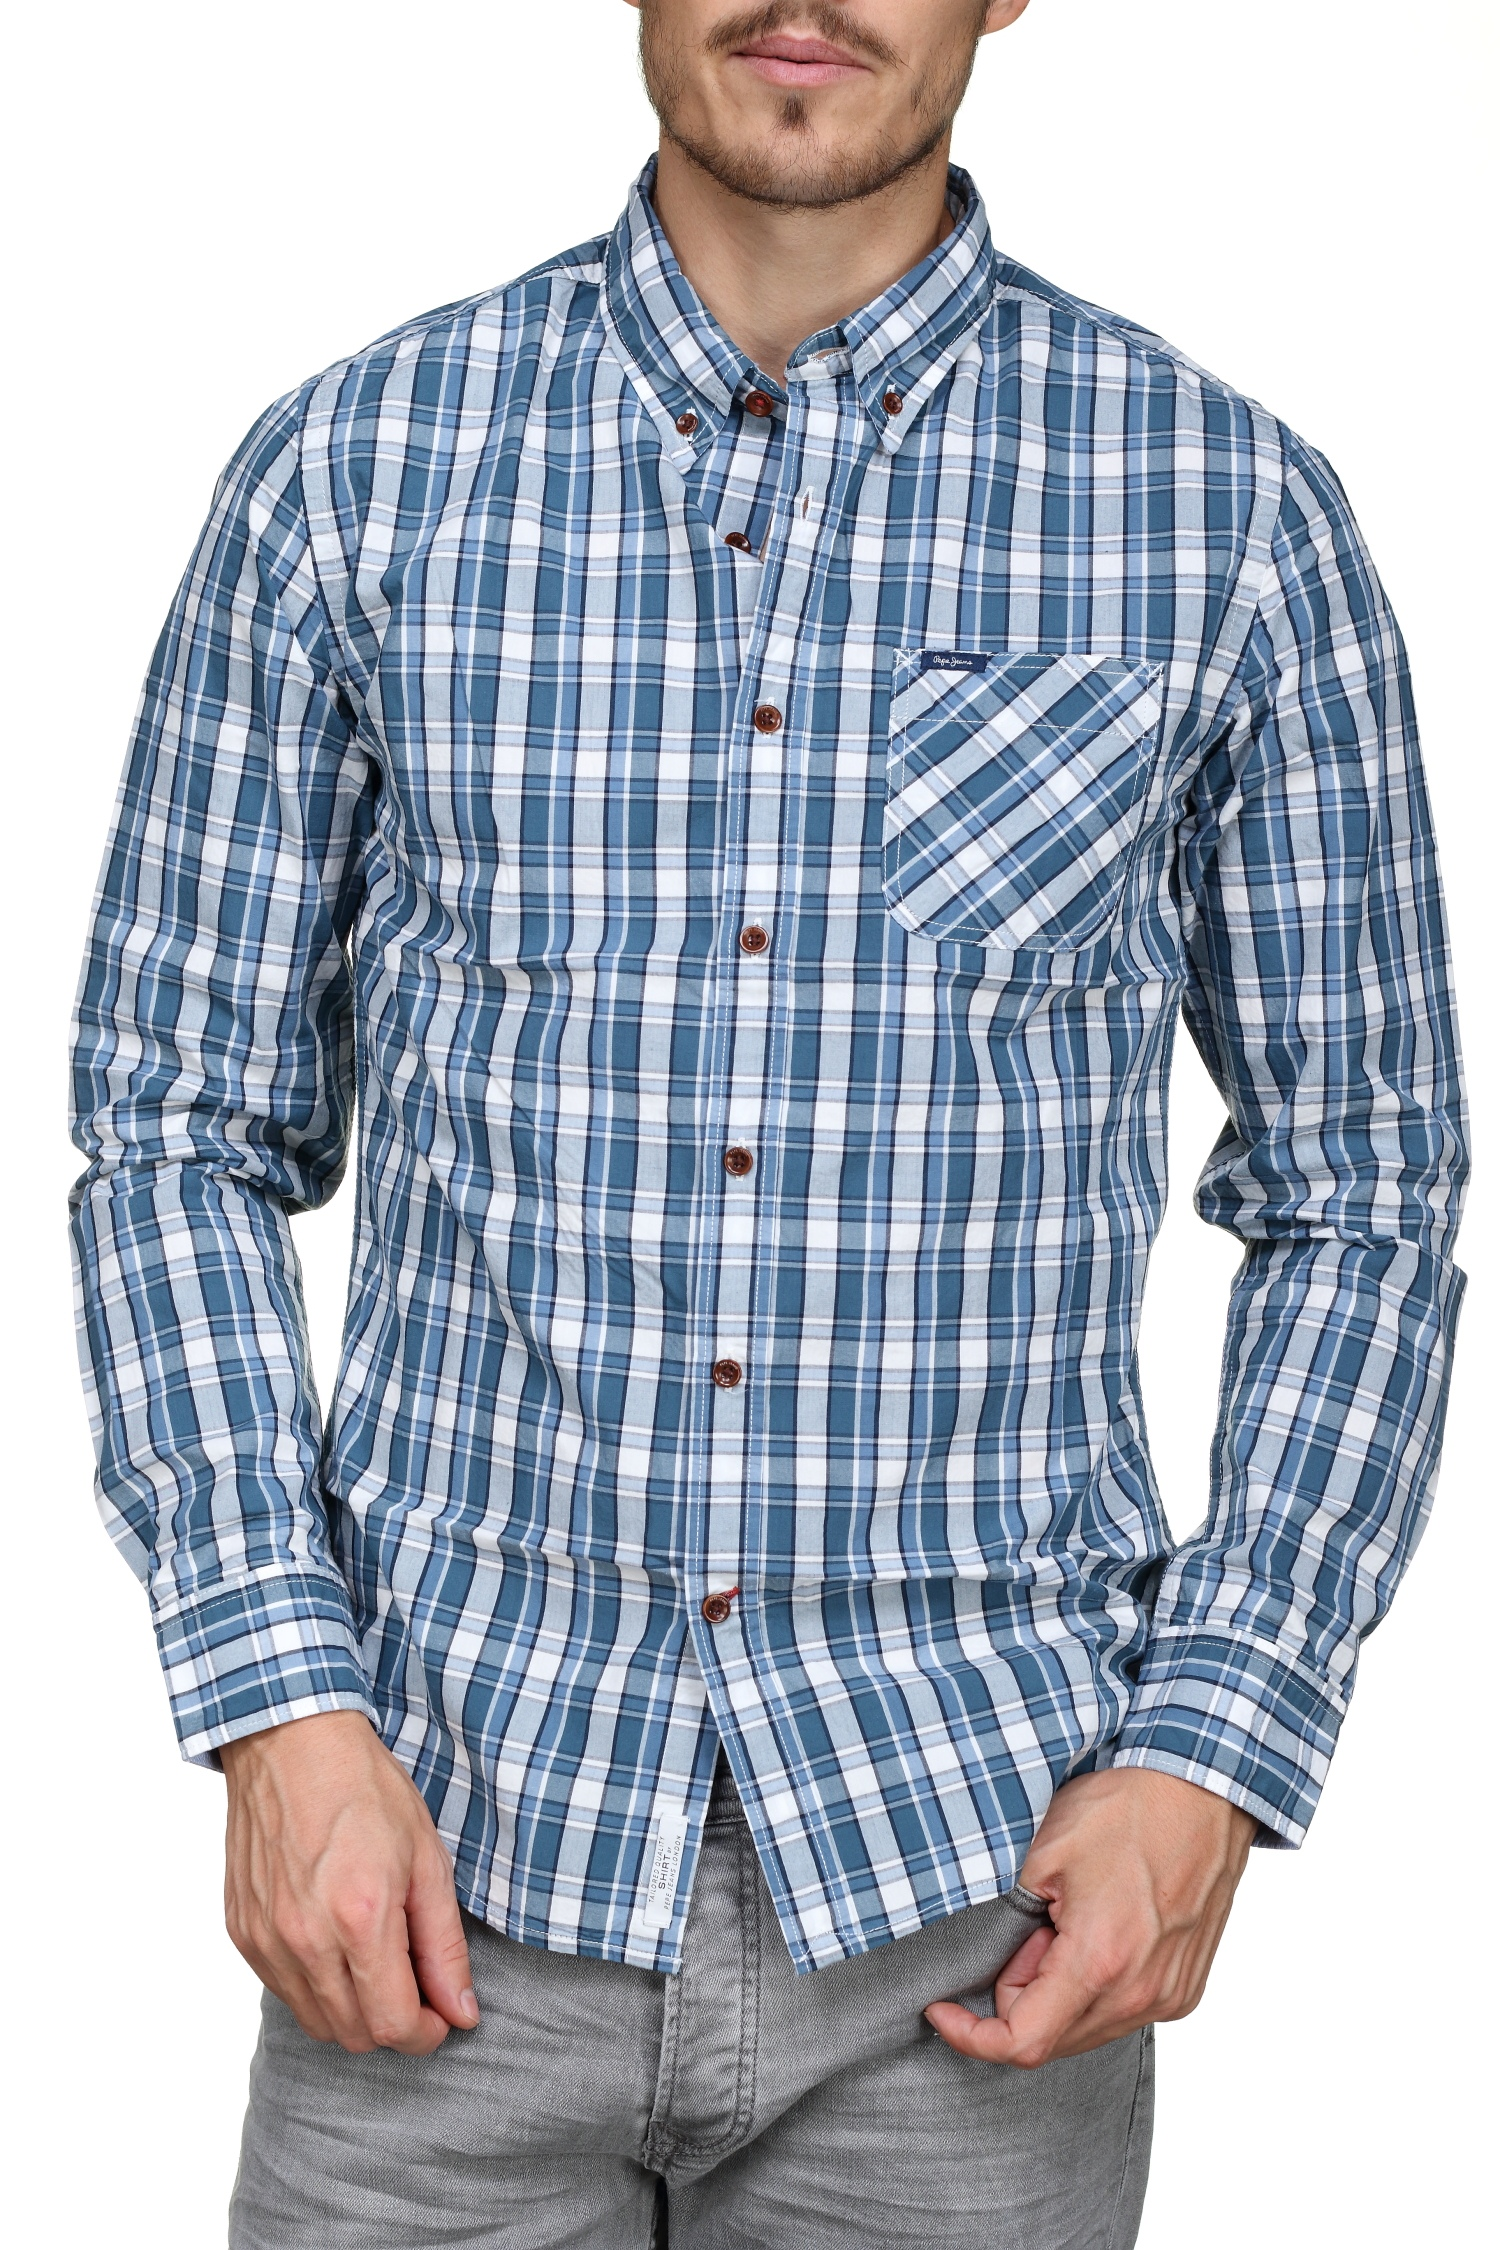 https://www.leadermode.com/157698/pepe-jeans-curtis-pm305460-564-chambray.jpg